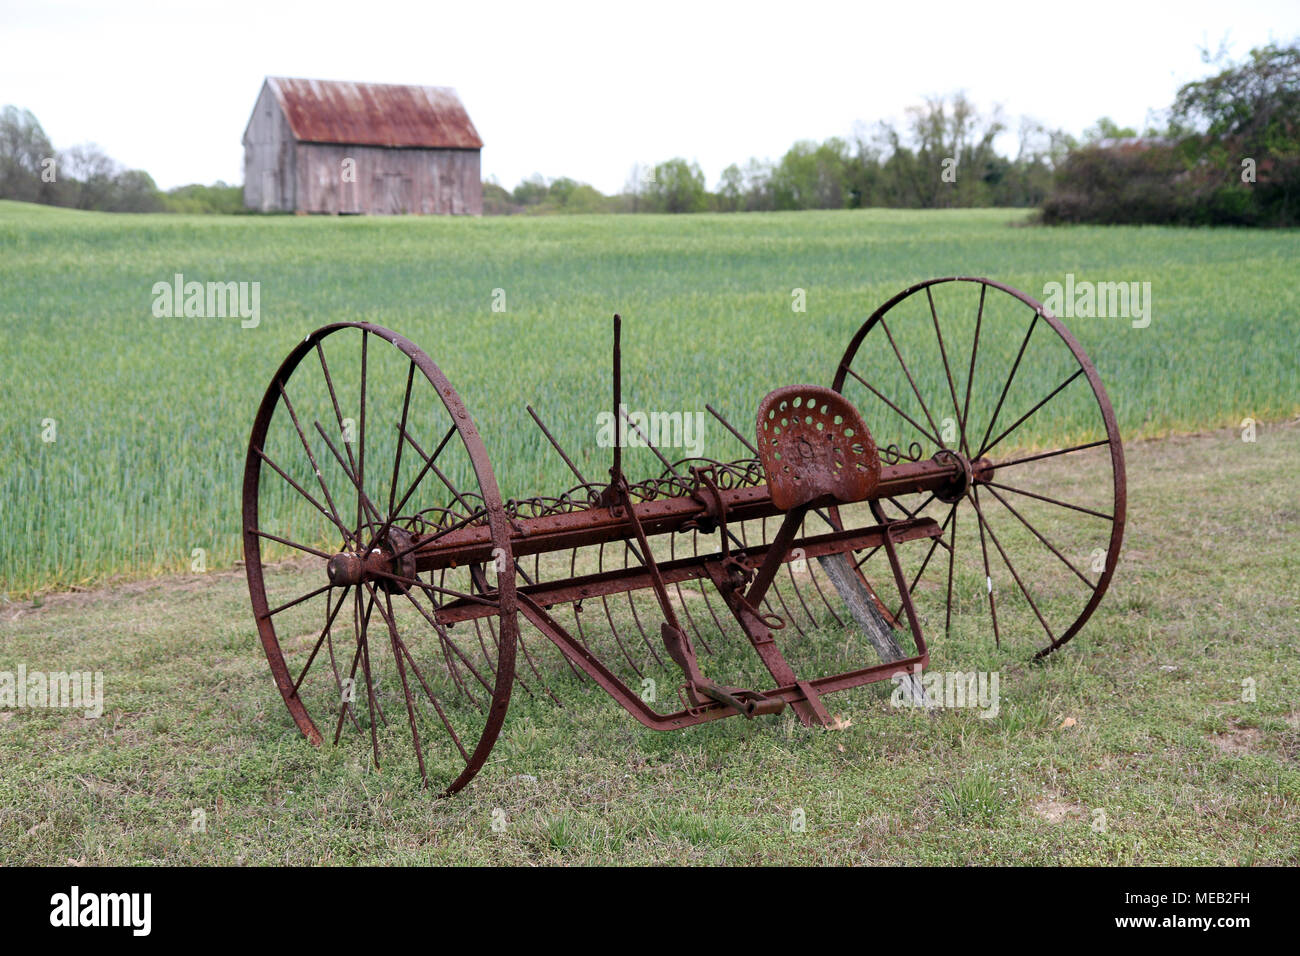 old rusty horse drawn cultivator with farm field and tobacco barn in background - Stock Image